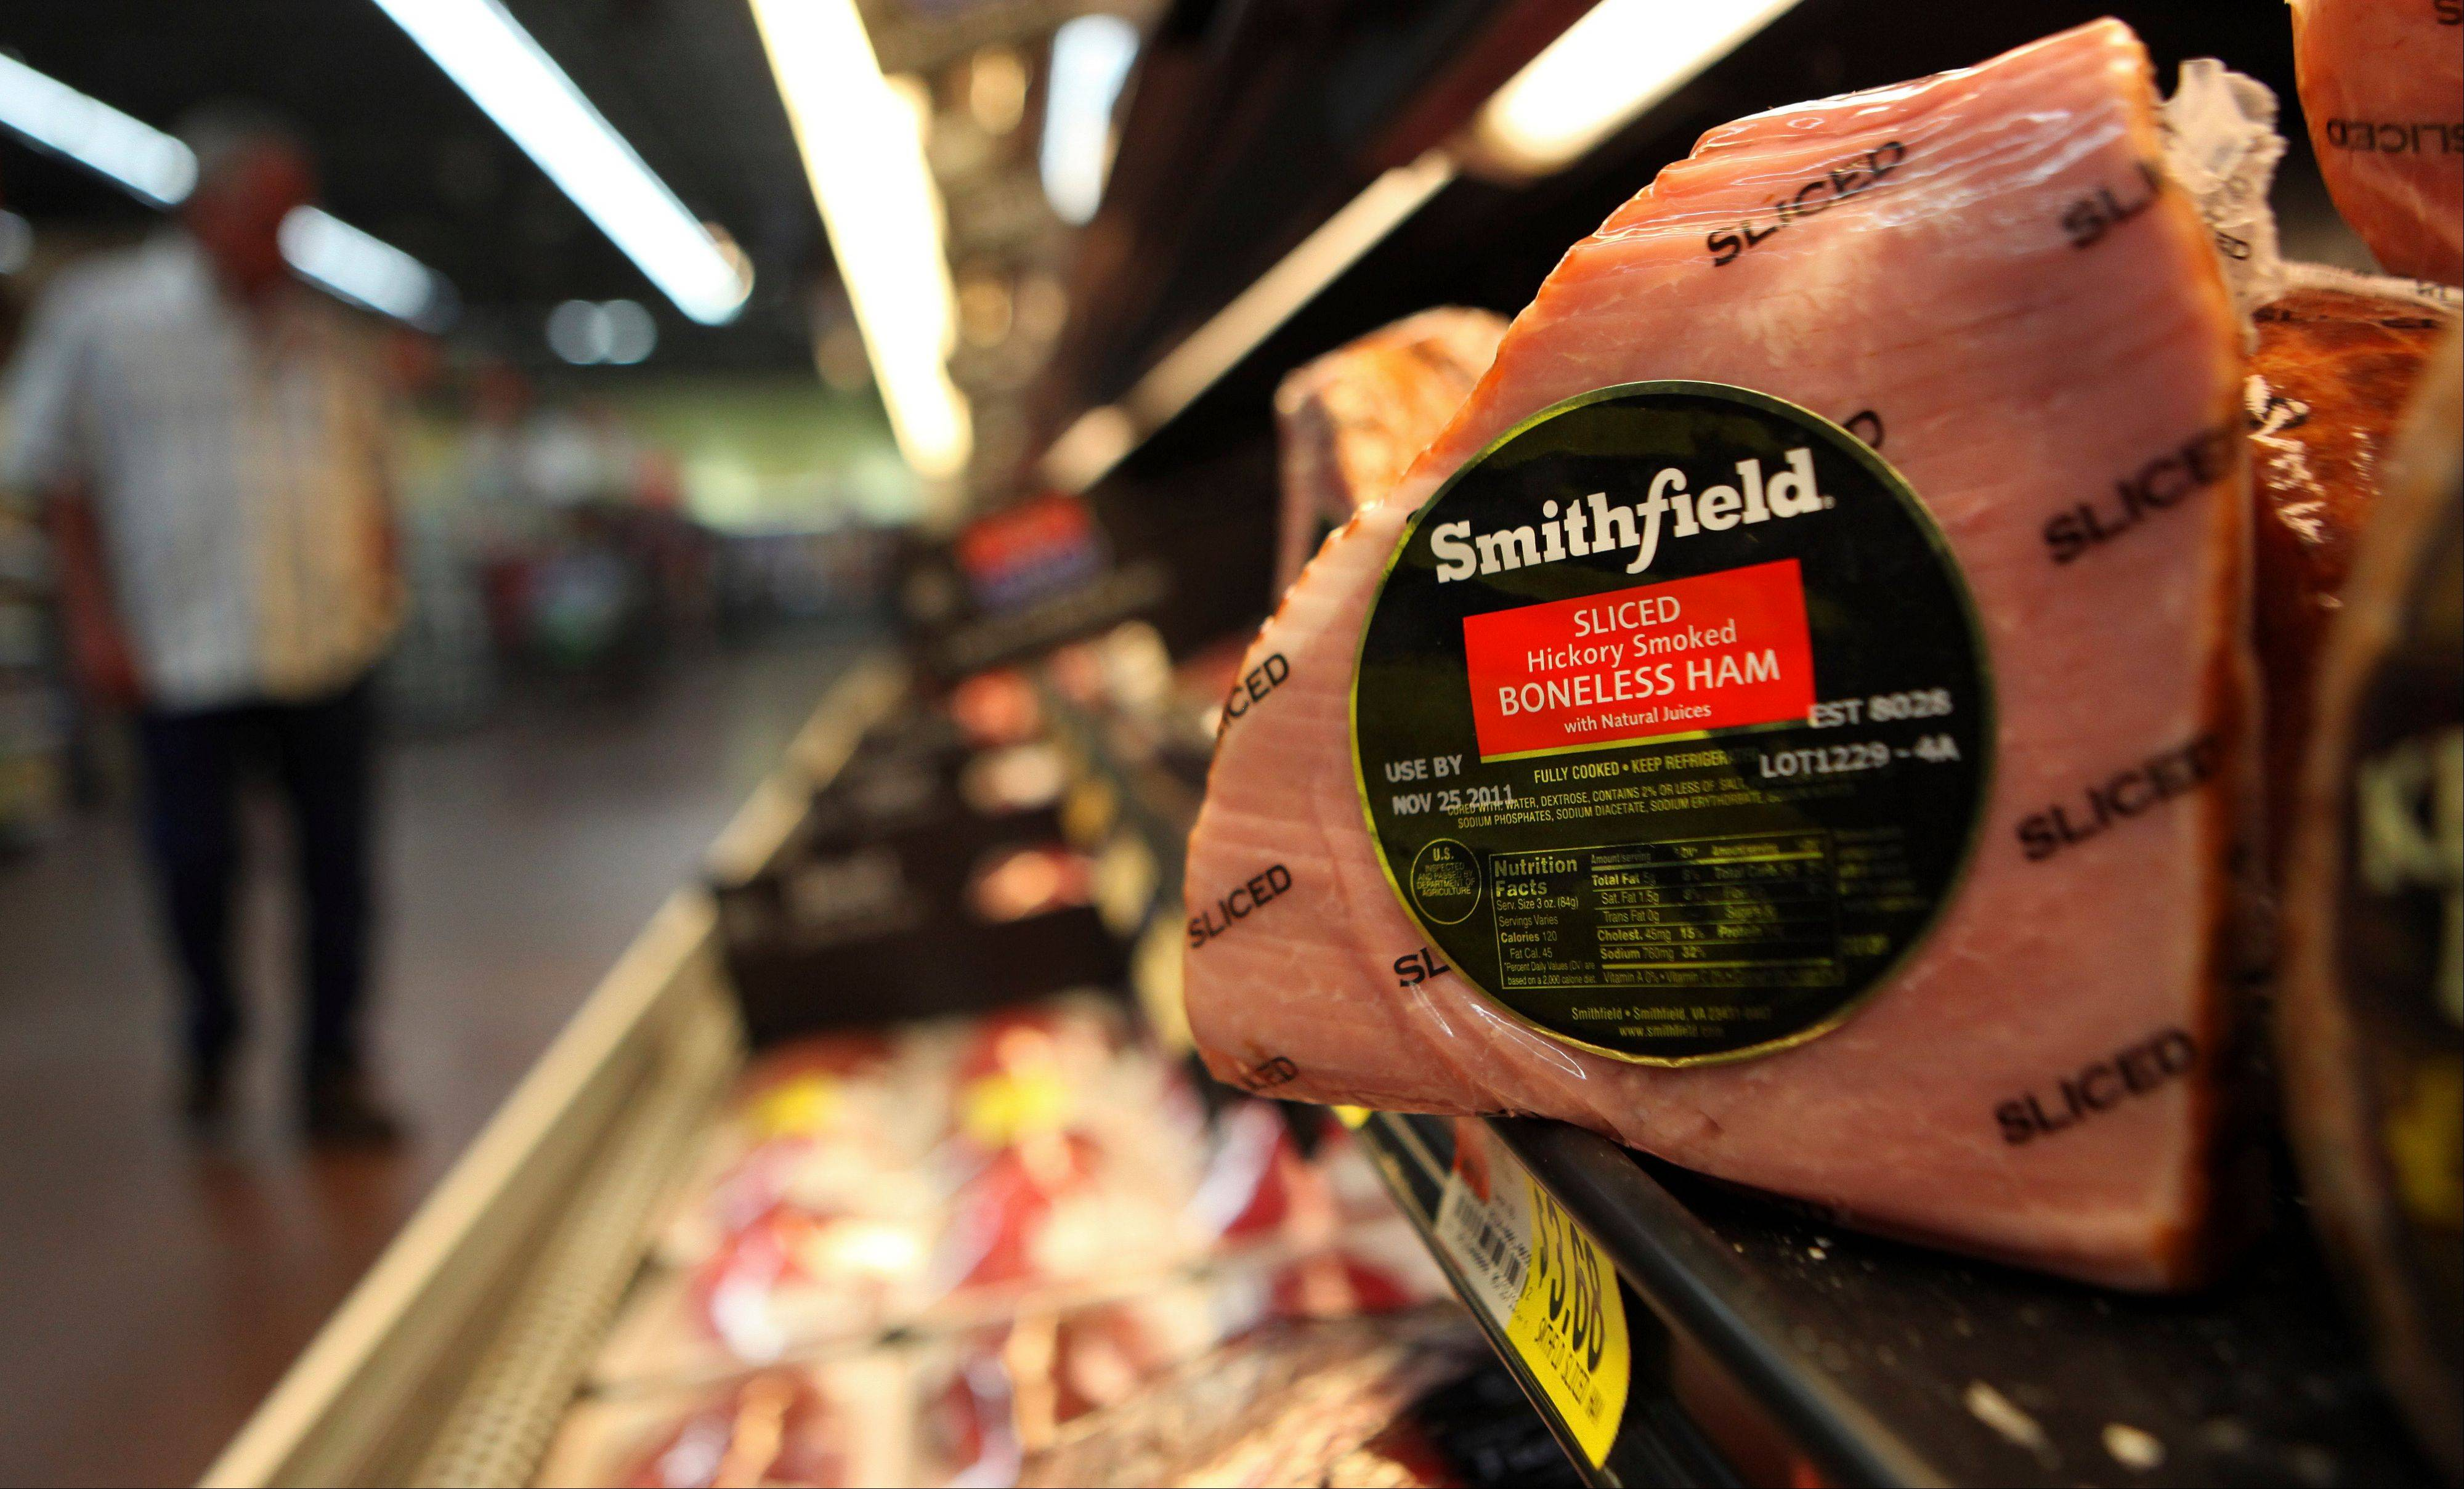 A Smithfield ham at a grocery store in Richardson, Texas. Smithfield Foods Inc.'s fiscal first-quarter net income rose 8 percent, as the world's biggest hog producer charged higher prices and sold more packaged meats. Associated Press